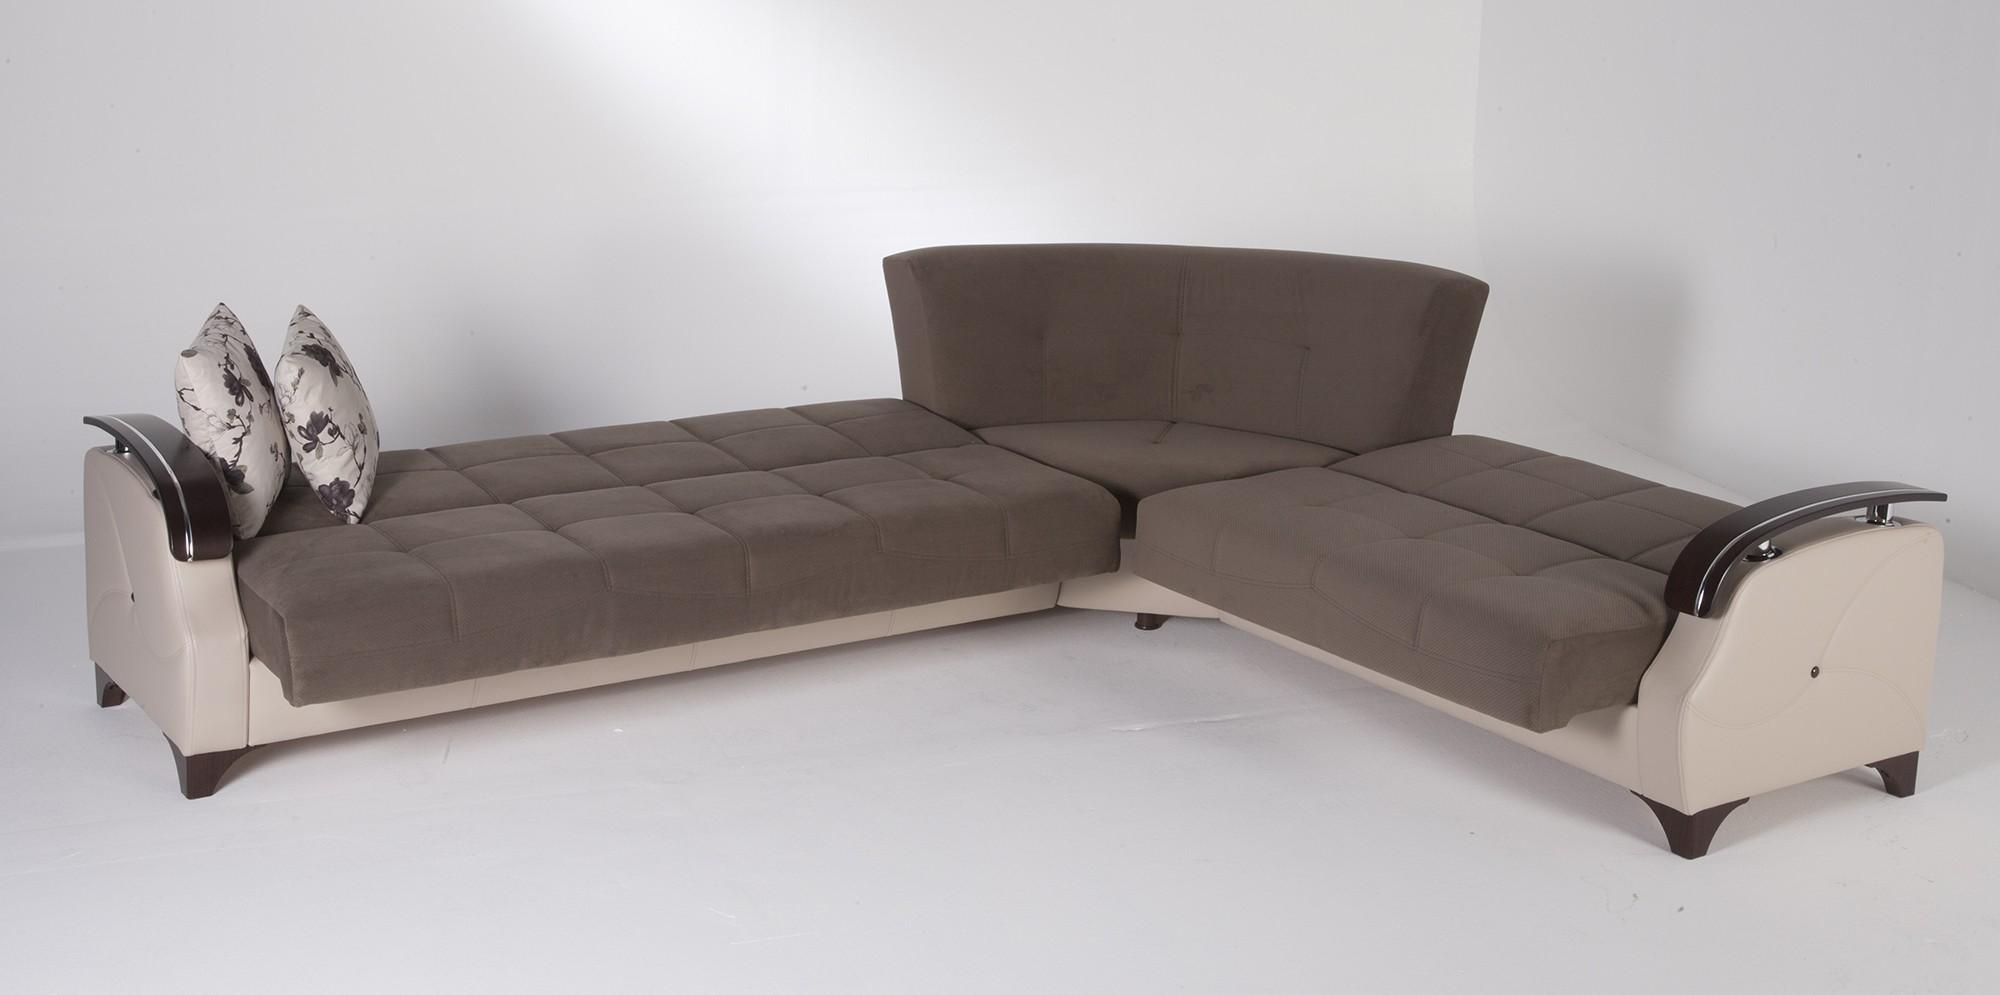 Sectional Sleeper Sofas For Sale – S3Net – Sectional Sofas Sale Within Sleeper Sectional Sofas (View 19 of 20)